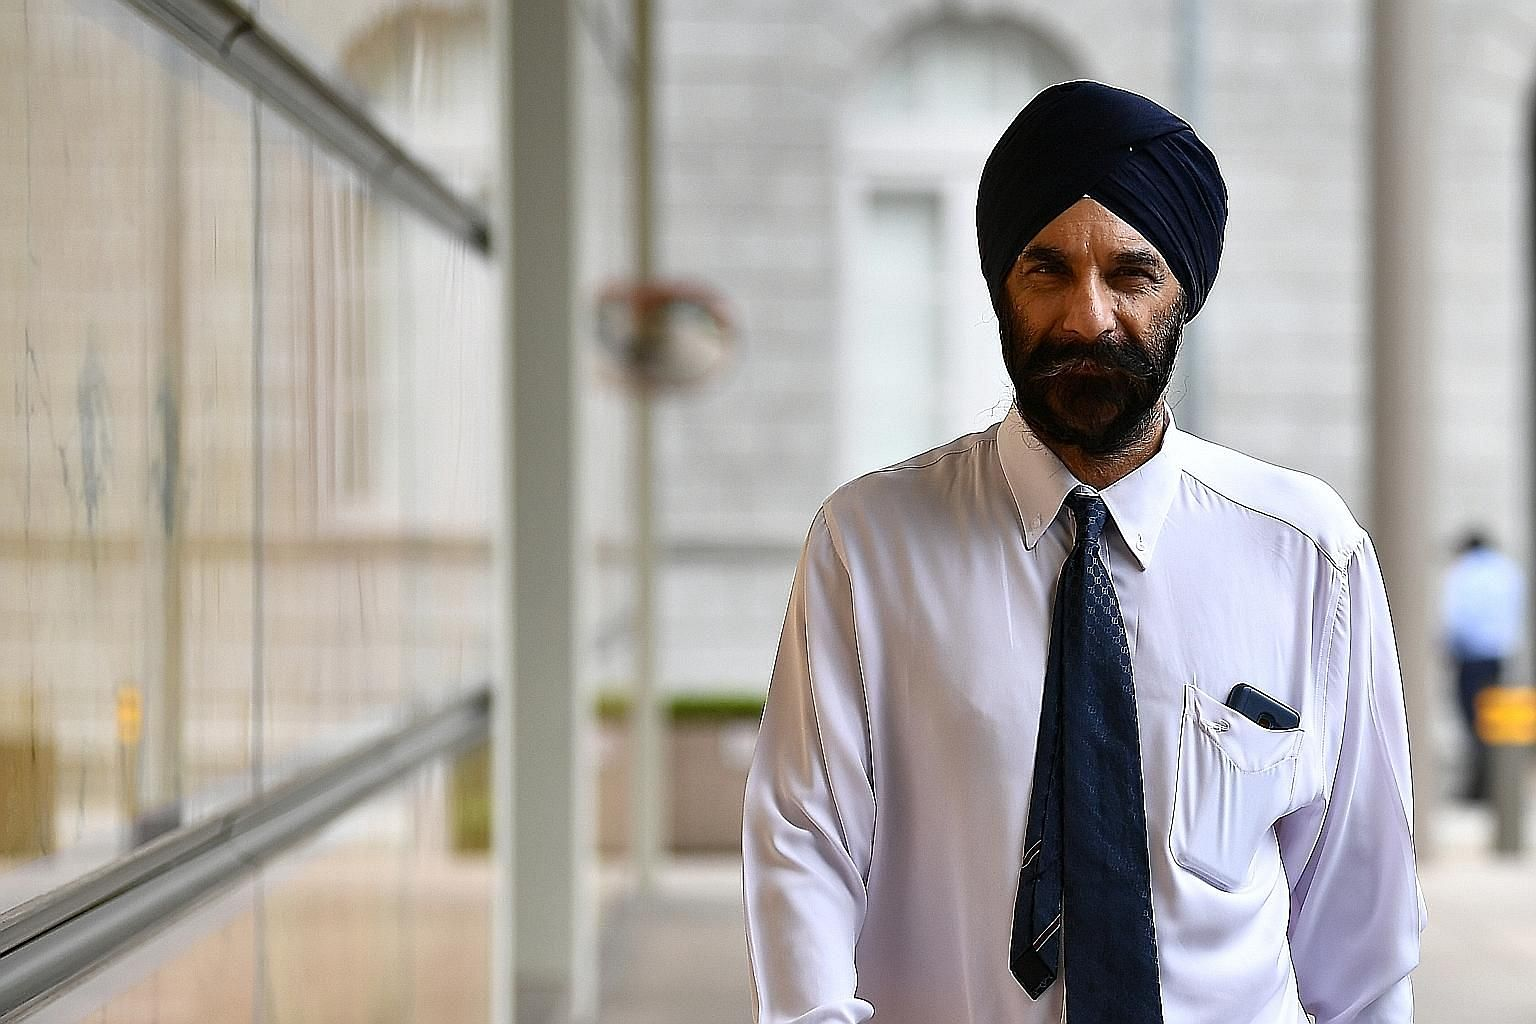 Senior Counsel Davinder Singh was inducted into Benchmark Litigation's hall of fame, the first lawyer from the Asia-Pacific region to receive the honour. His selection was based on independent research, not on the input or submissions from others. ST